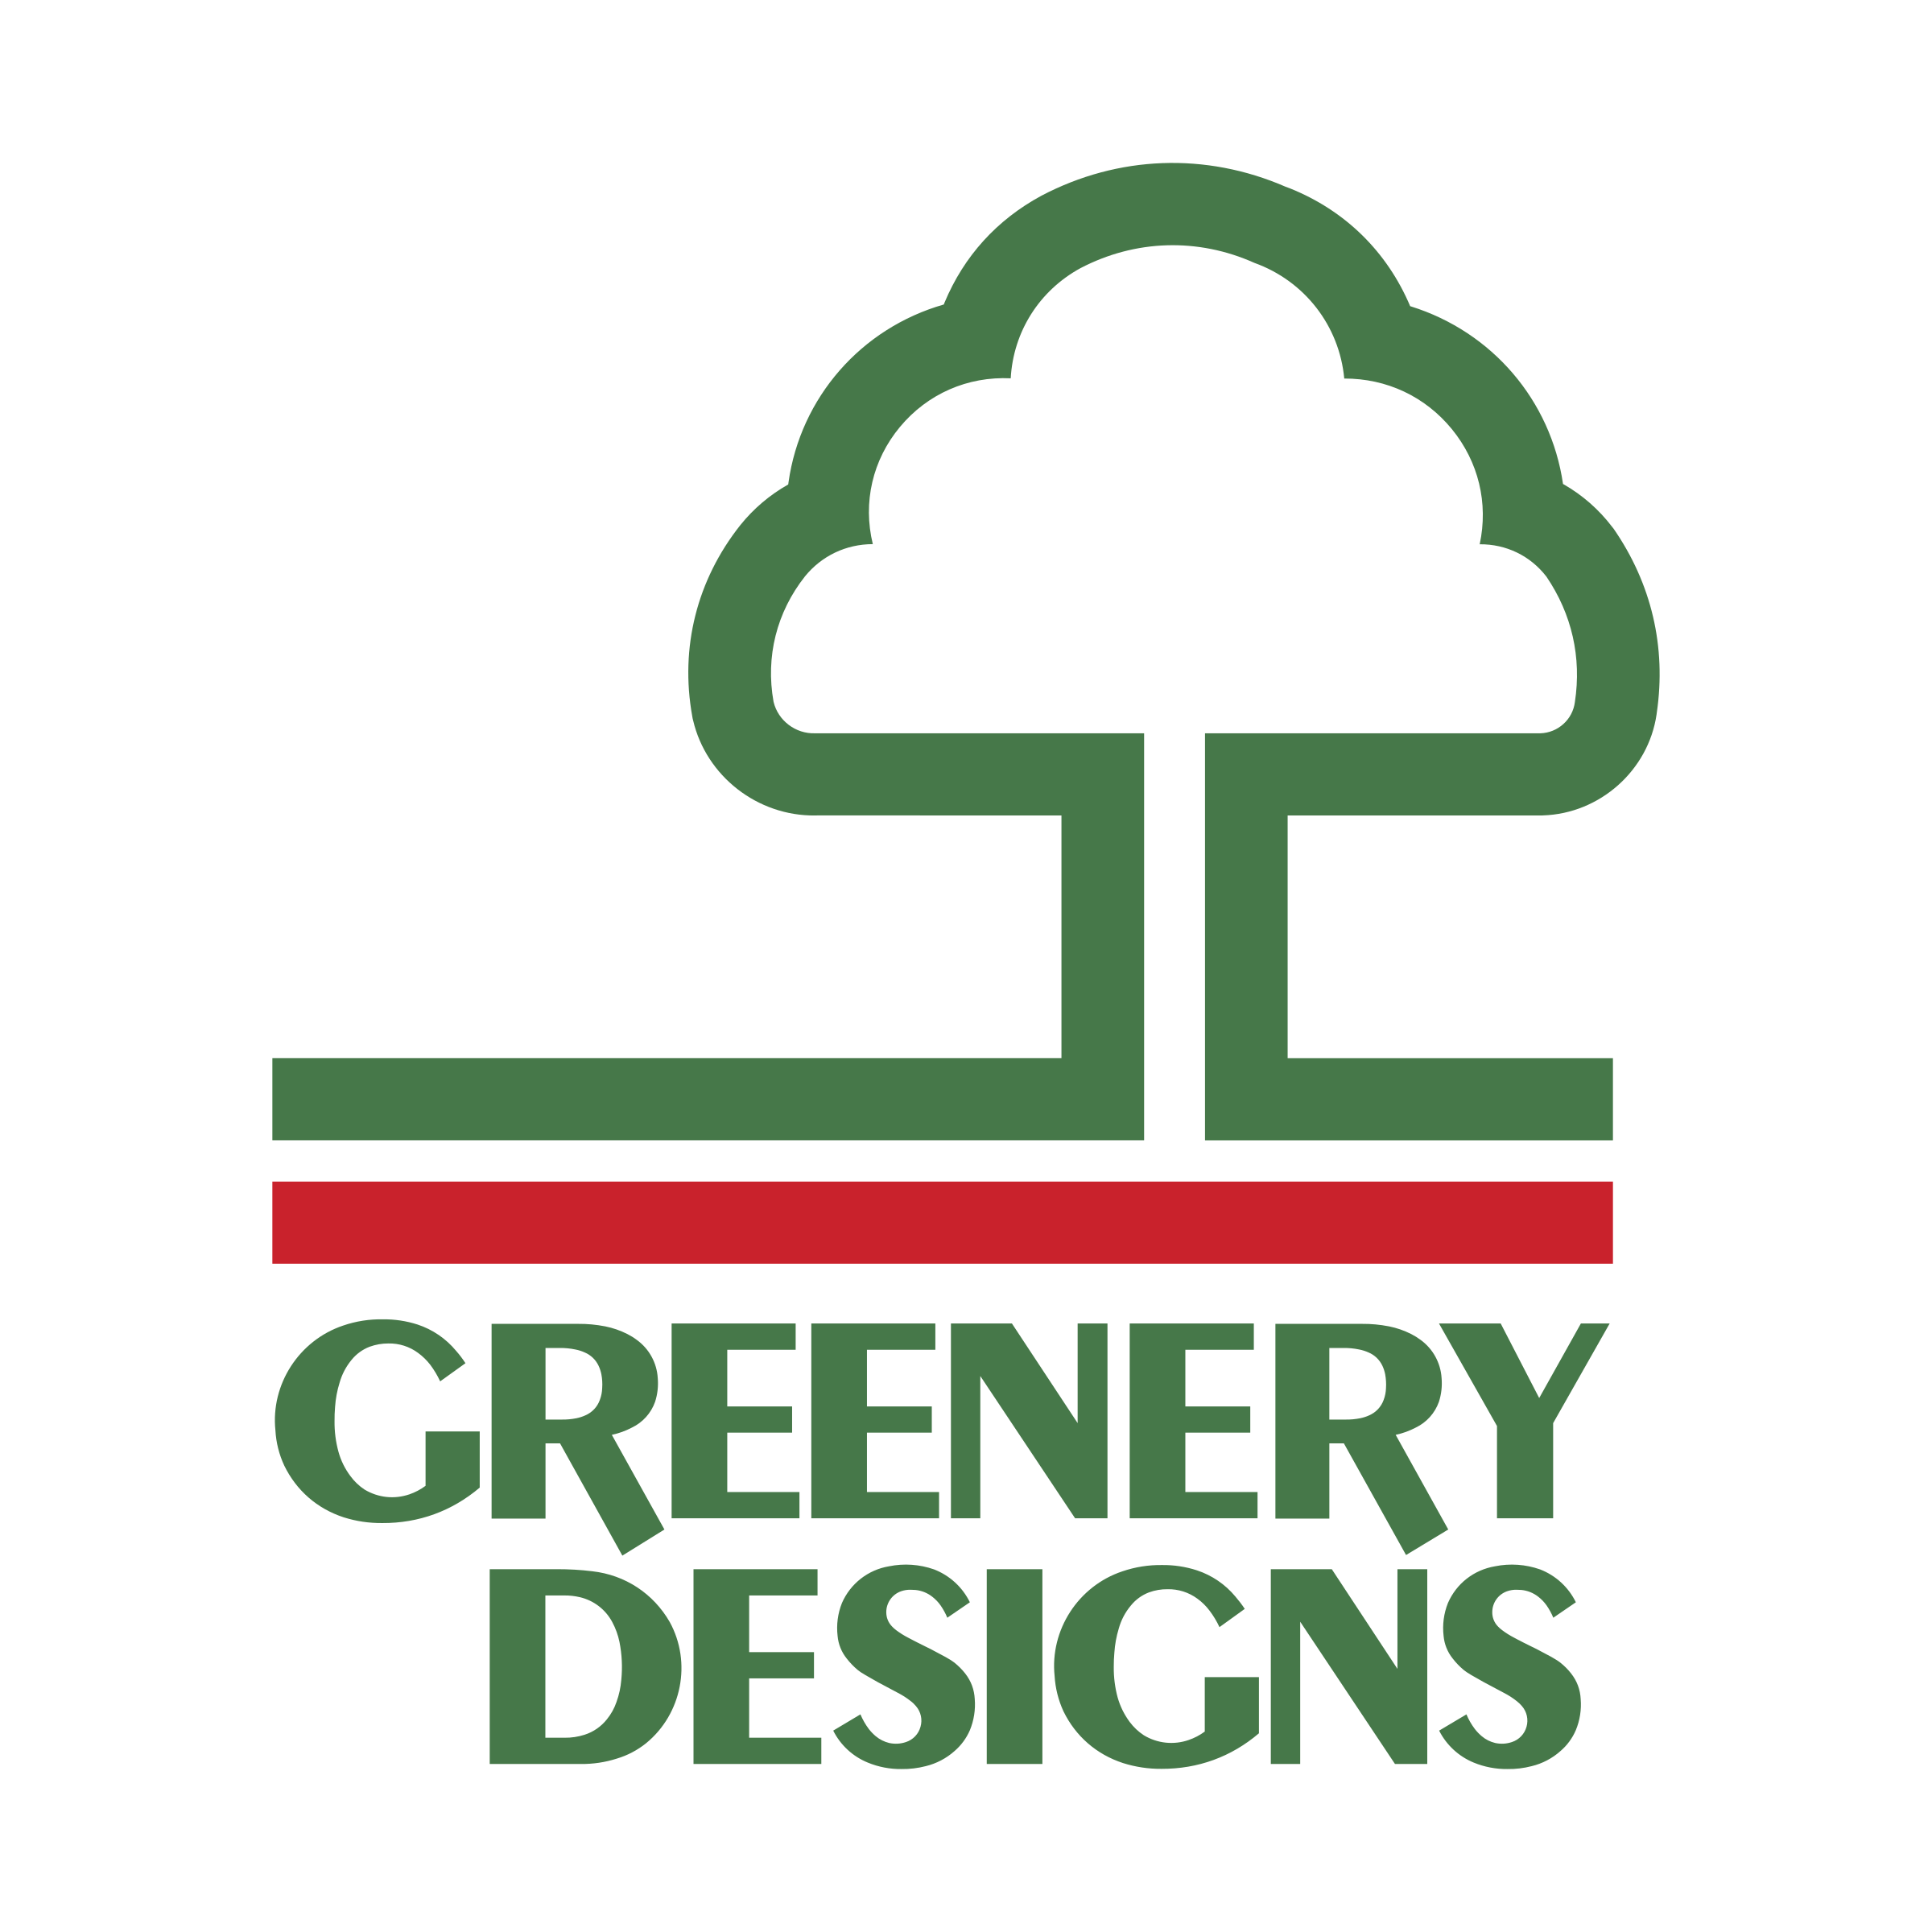 Designs logo png transparent. Greenery vector jpg freeuse library